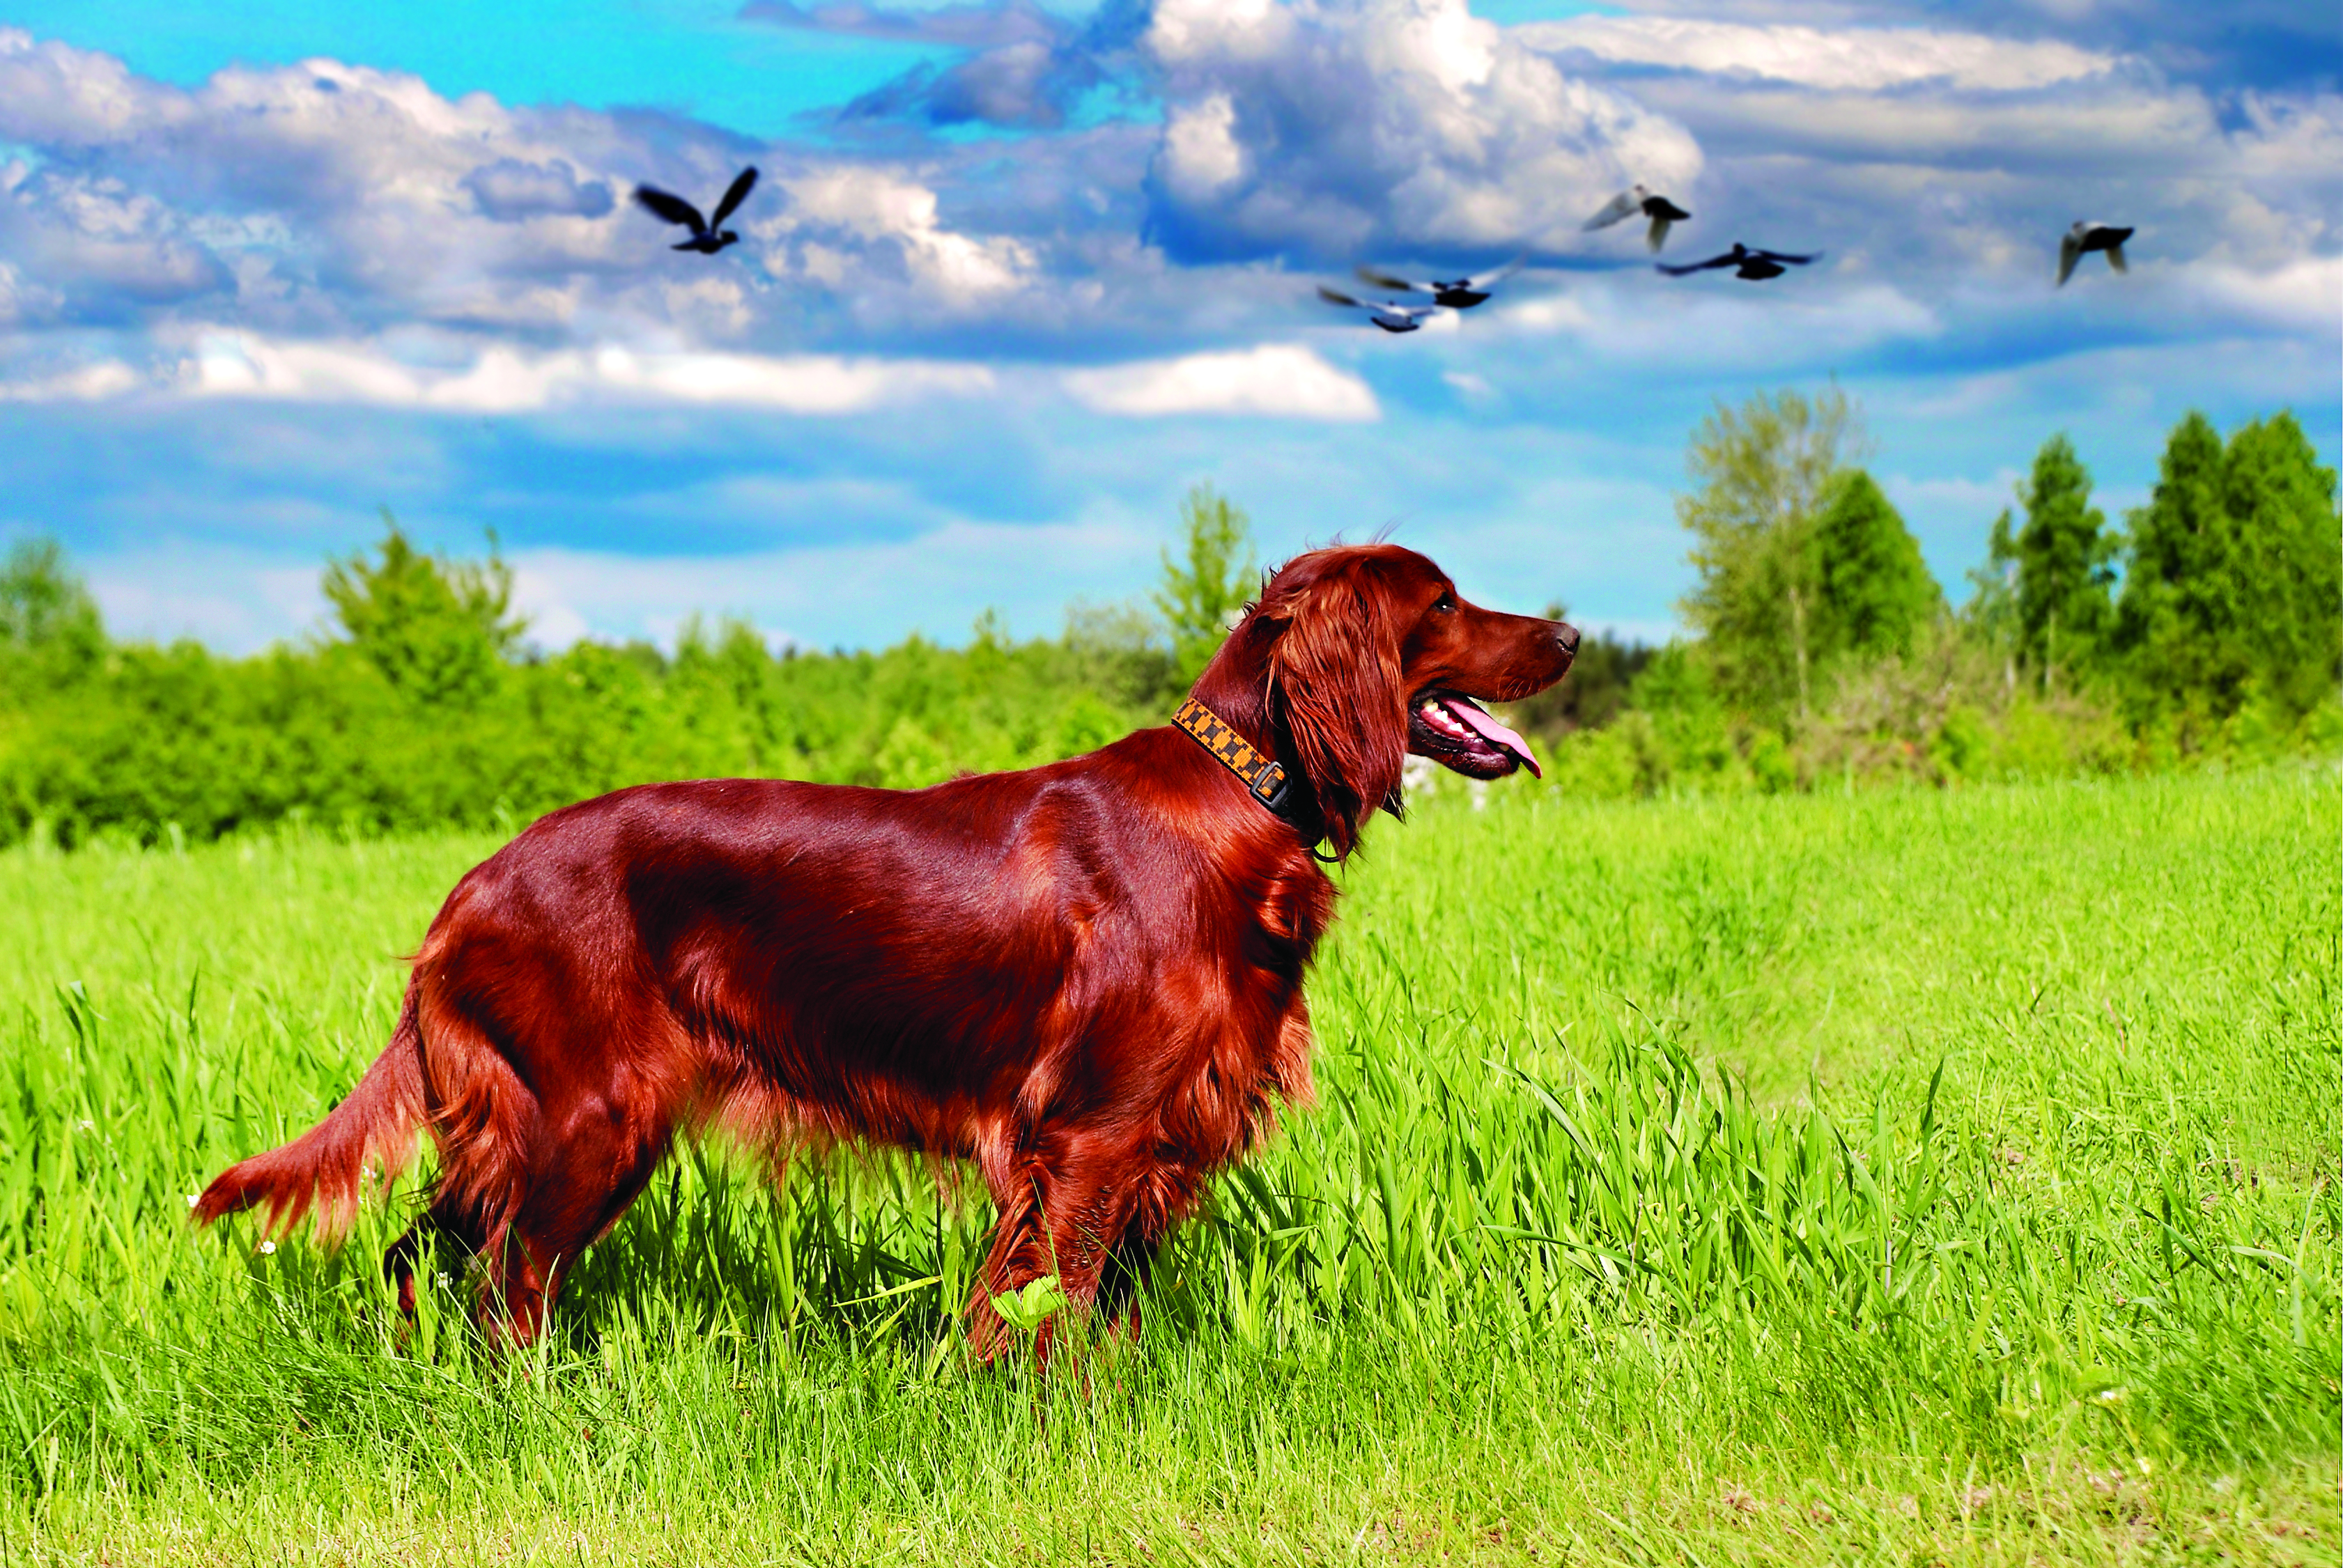 Hunting irish setter standing in the grass